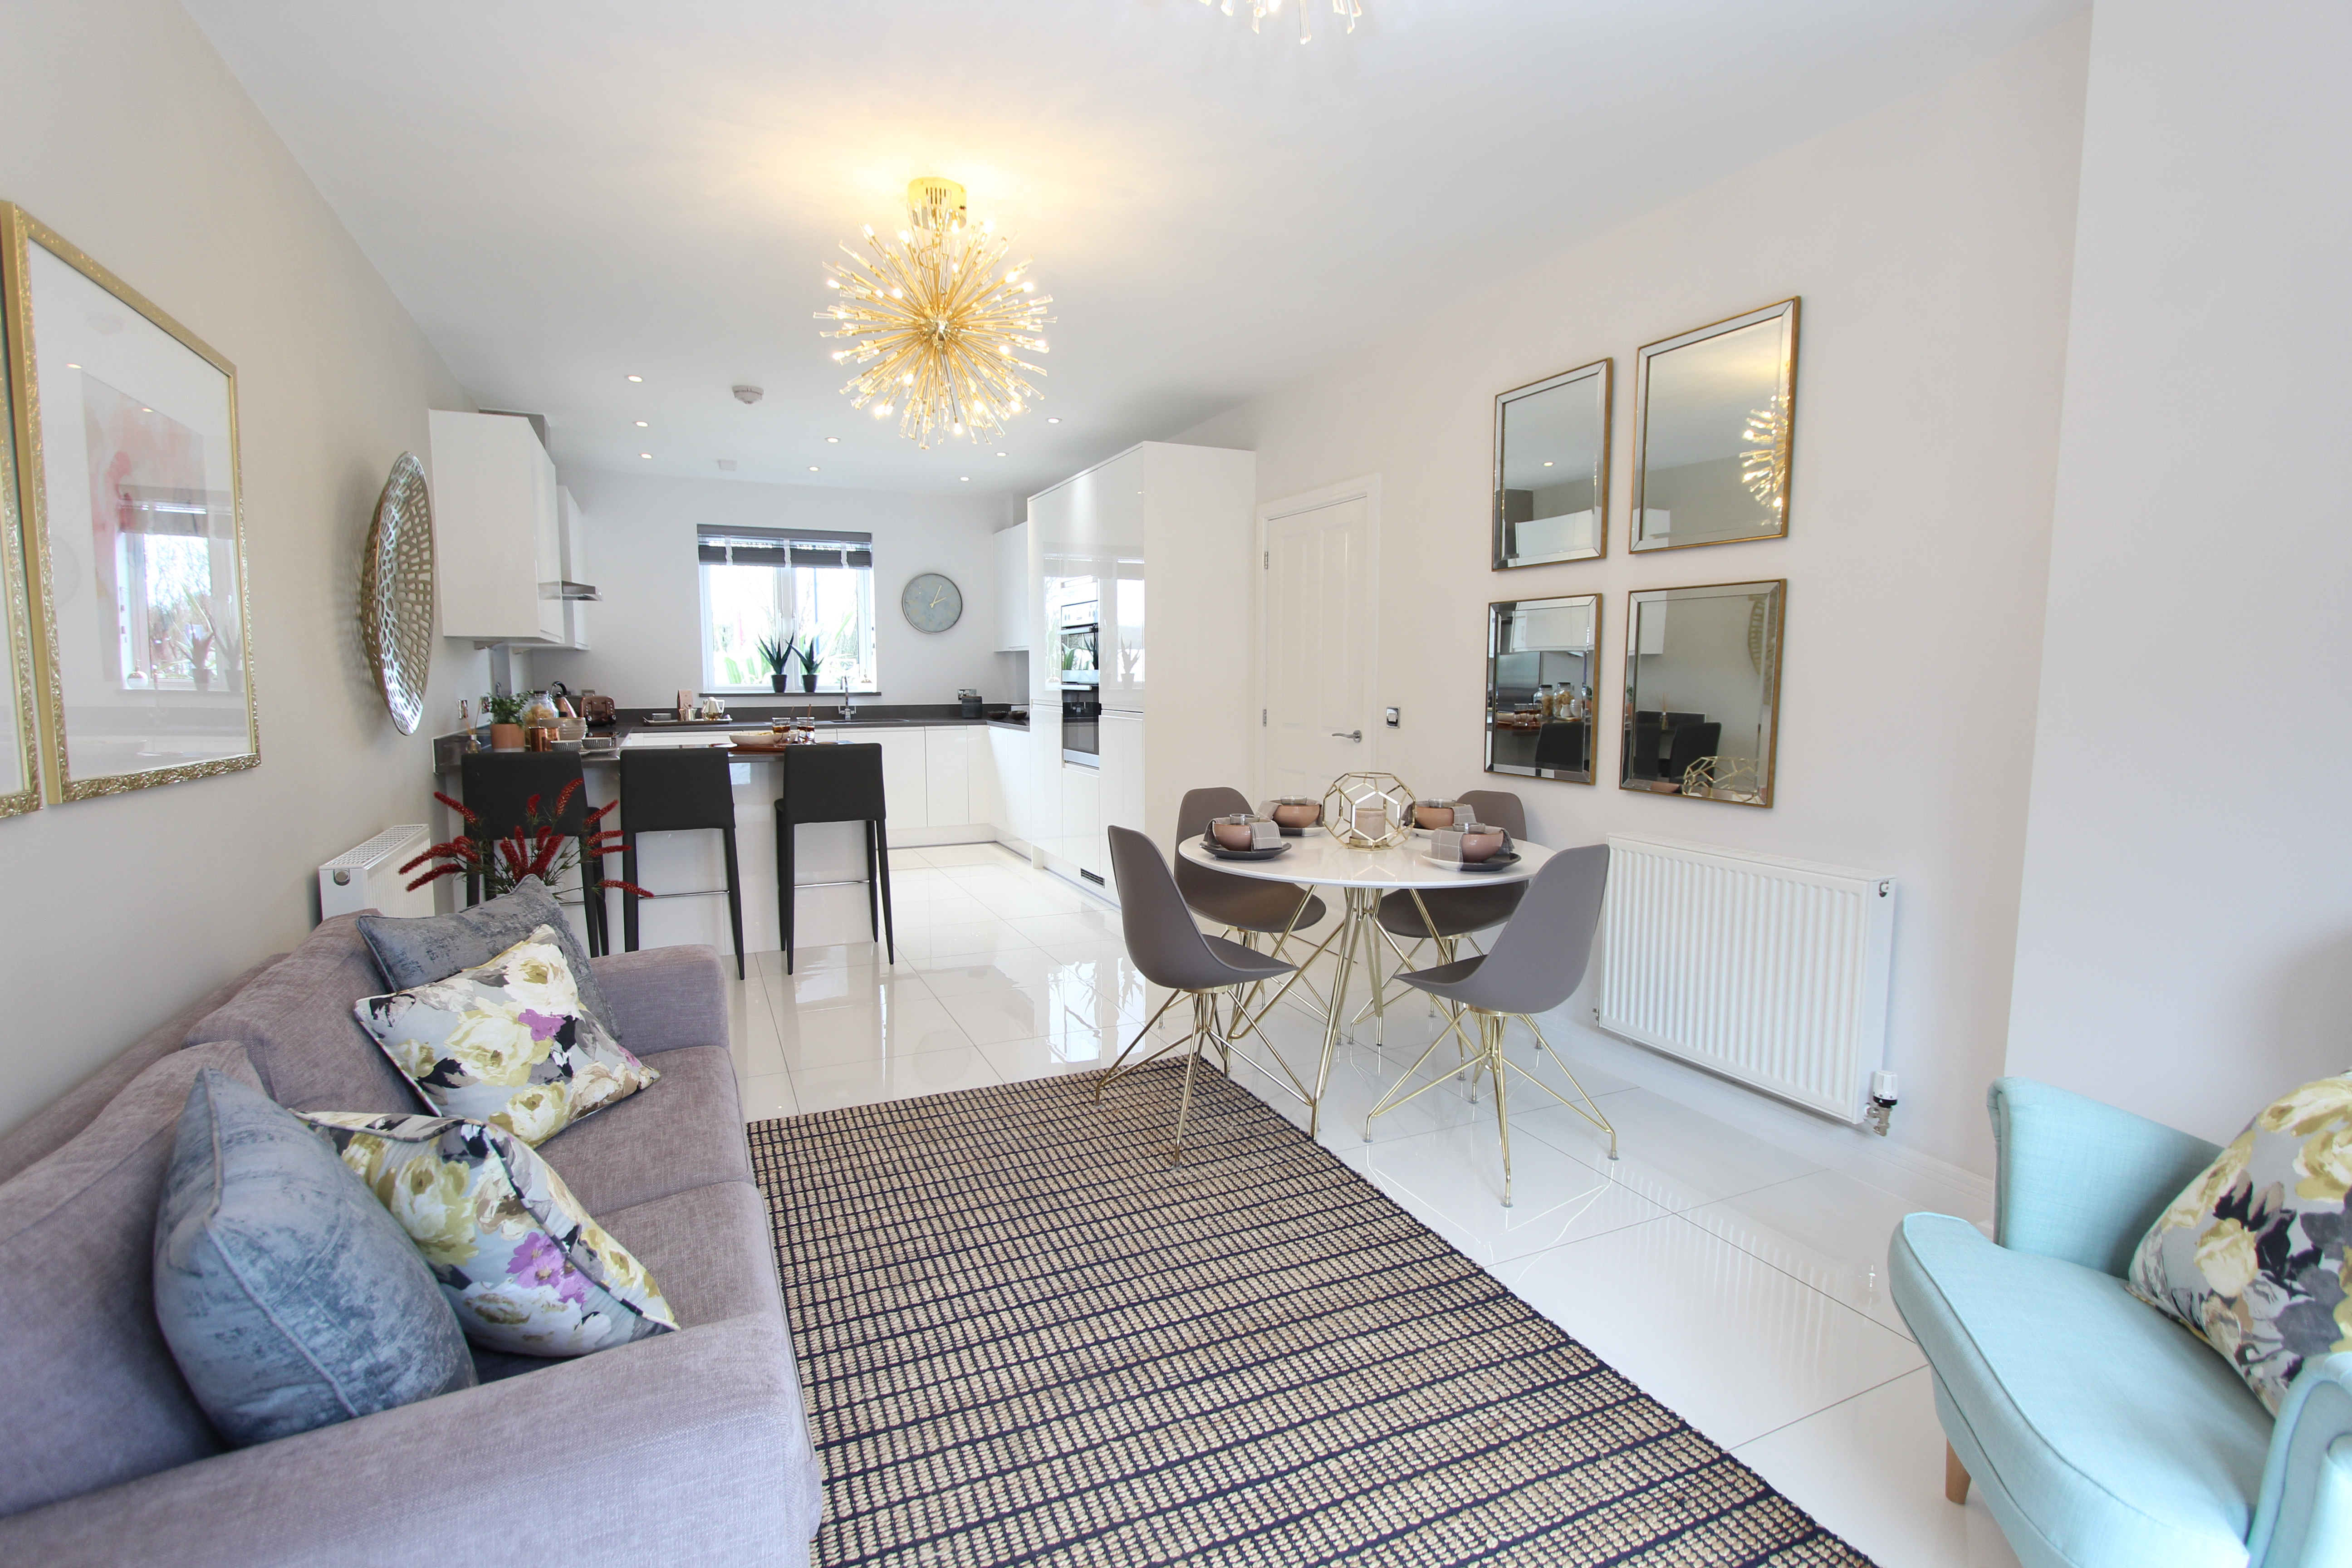 Detached Family Home, Bedford Image